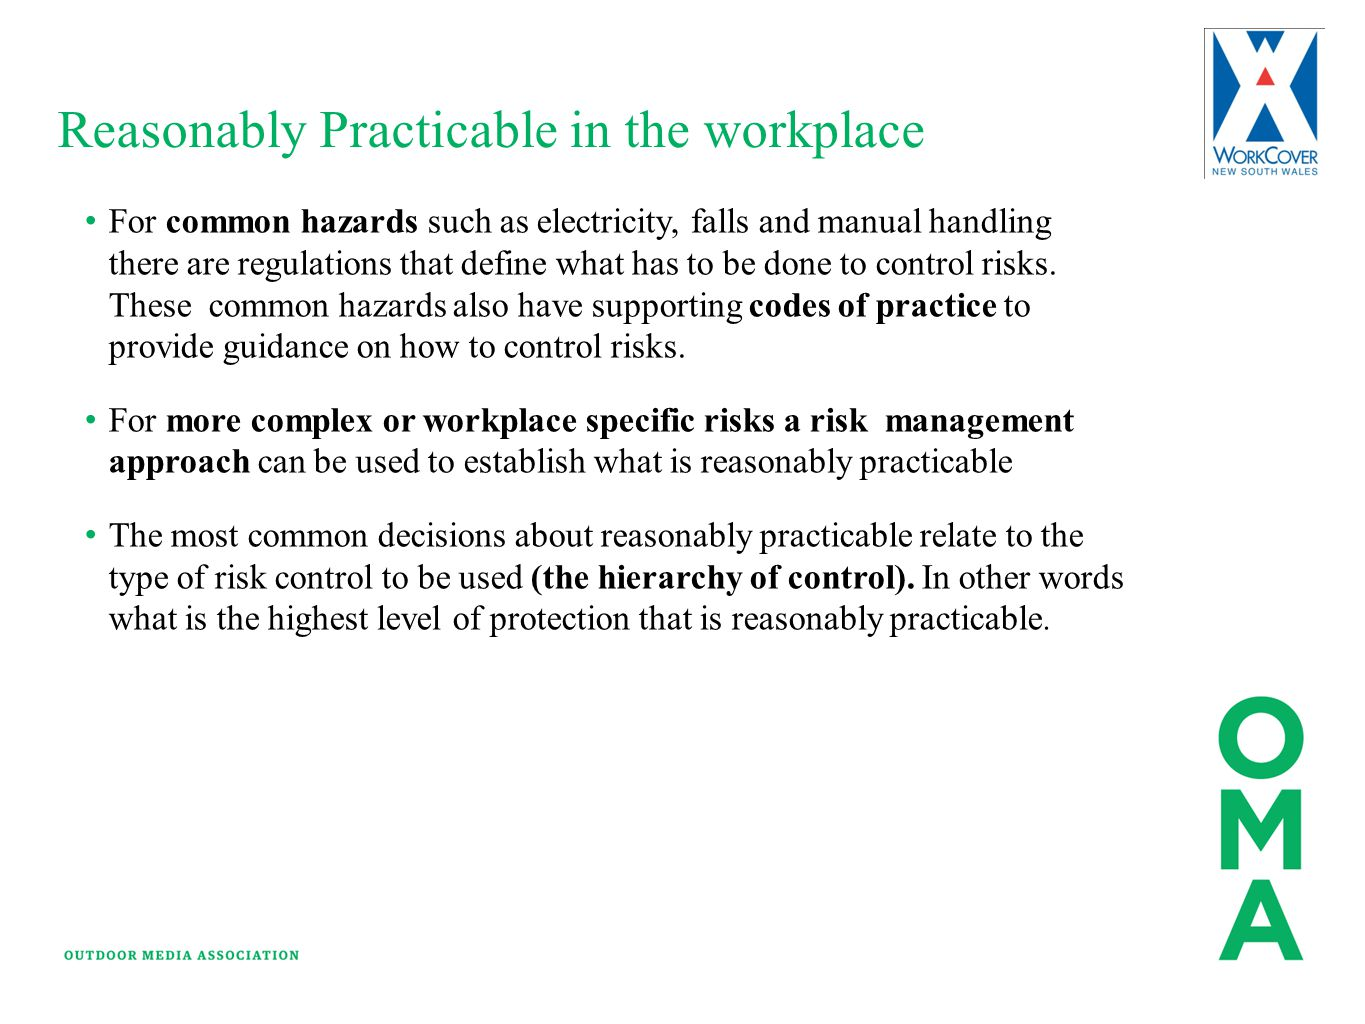 Reasonably Practicable in the workplace